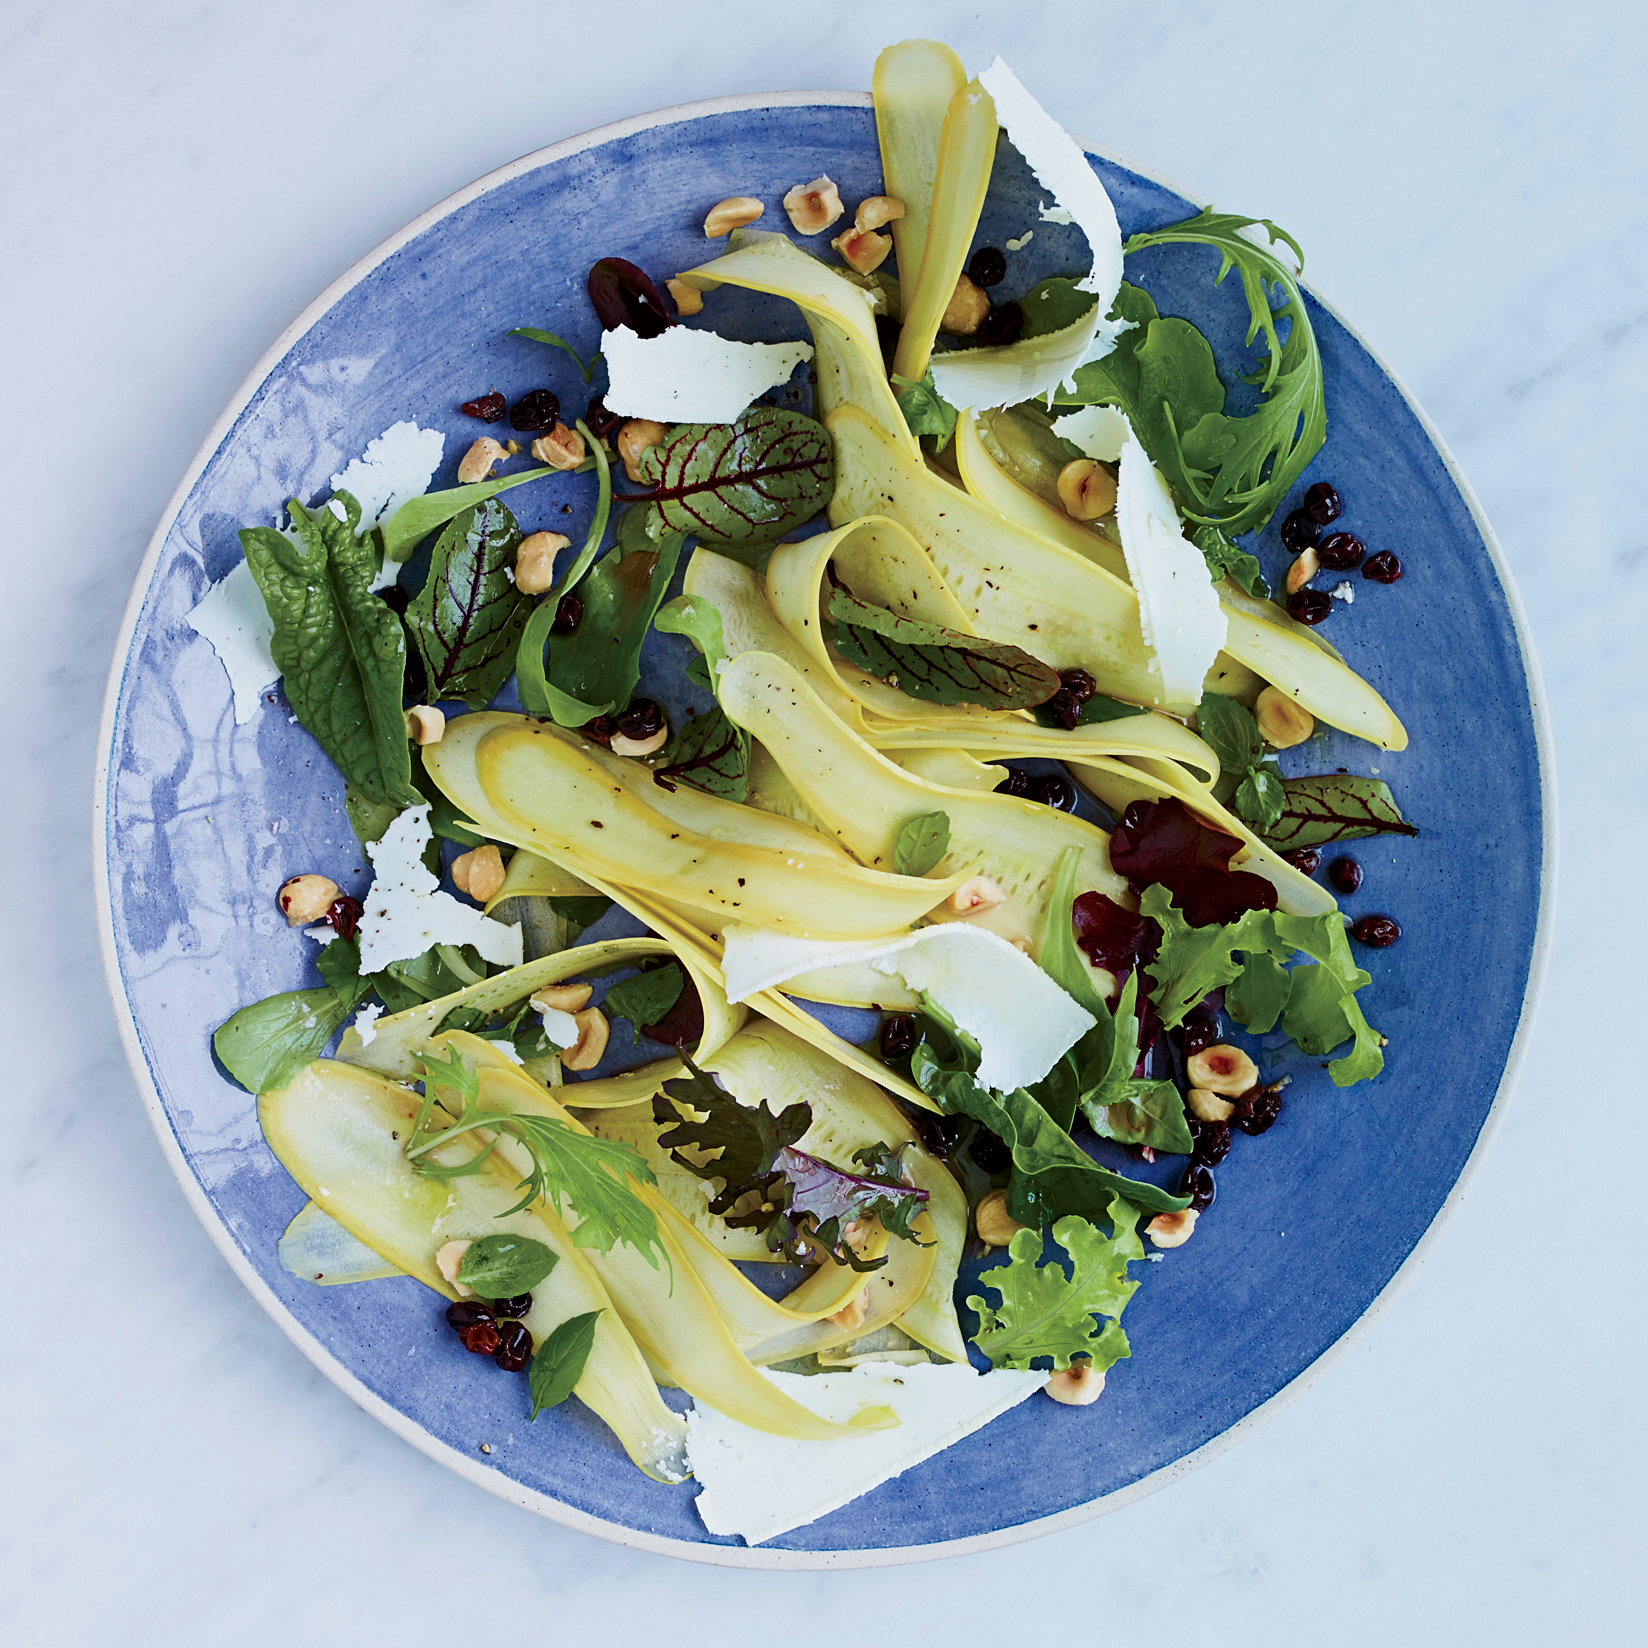 201409-r-summer-squash-salad-with-pickled-currants.jpg